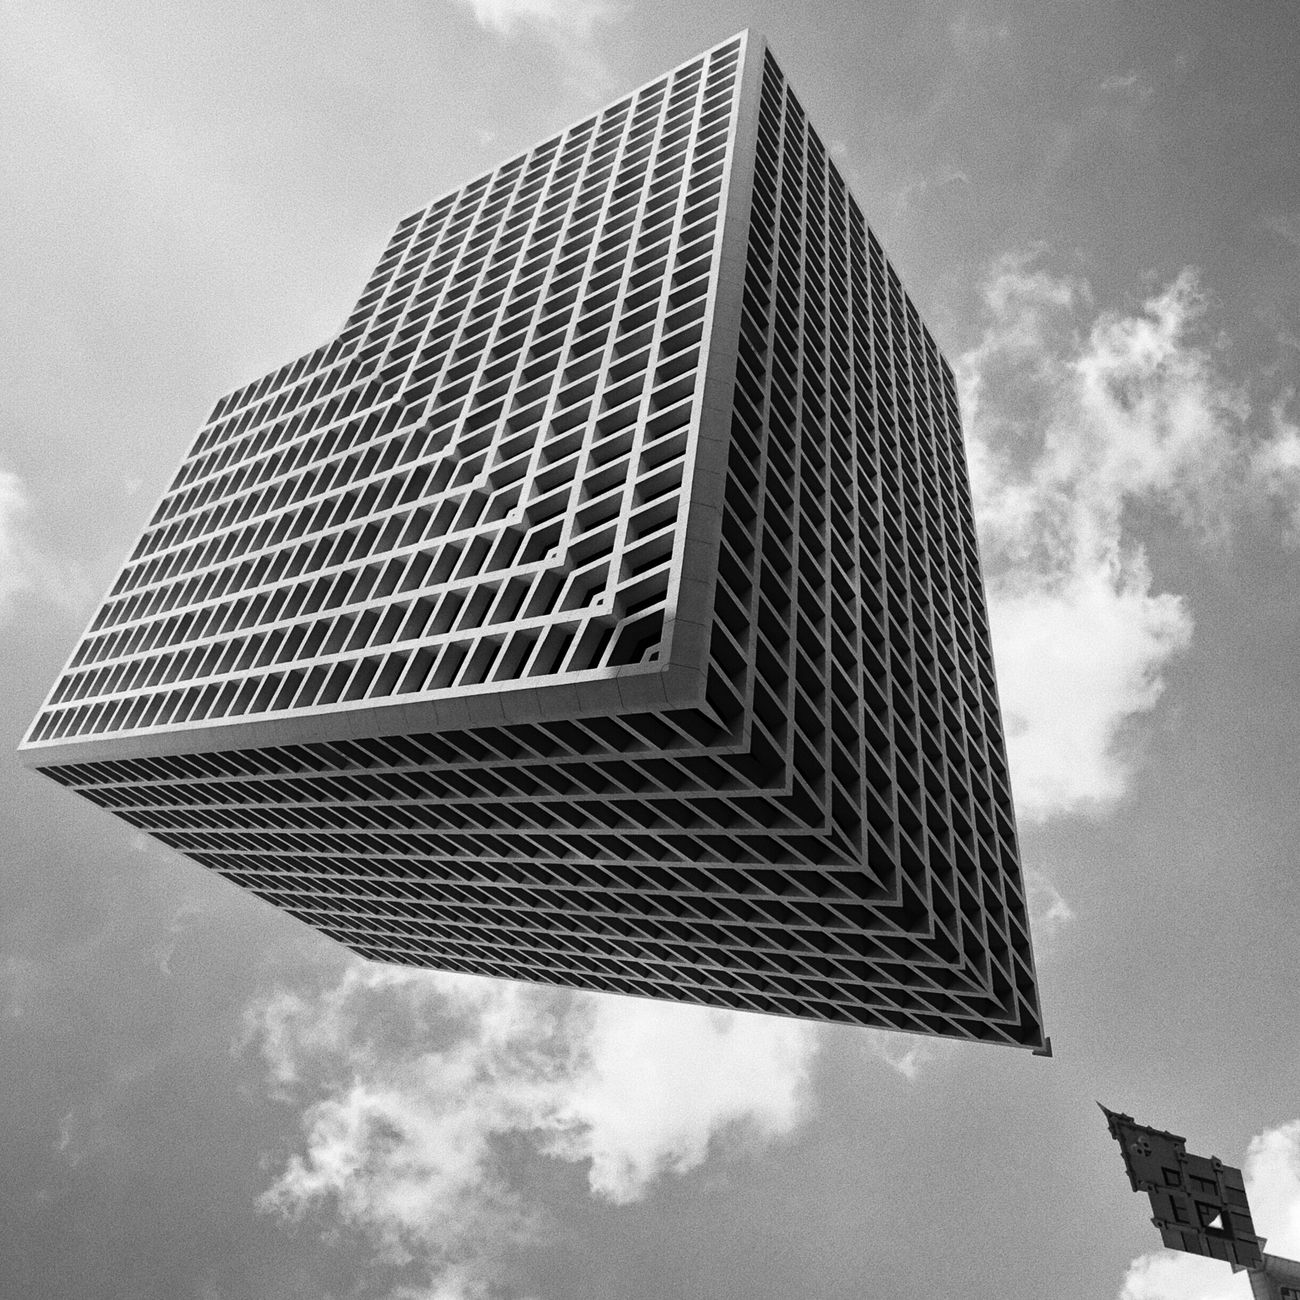 Parking Blackandwhite Photography Blackandwhite Eyecatseries Black & White Monochrome Monochromatic Black And White EyeEm Best Shots - Black + White Doubleexposure Double Exposure Symmetry Symmetryporn Symmetrical Art Artistic Abstract Abstract Art Abstractart Rearchitseries Abstractarchitecture